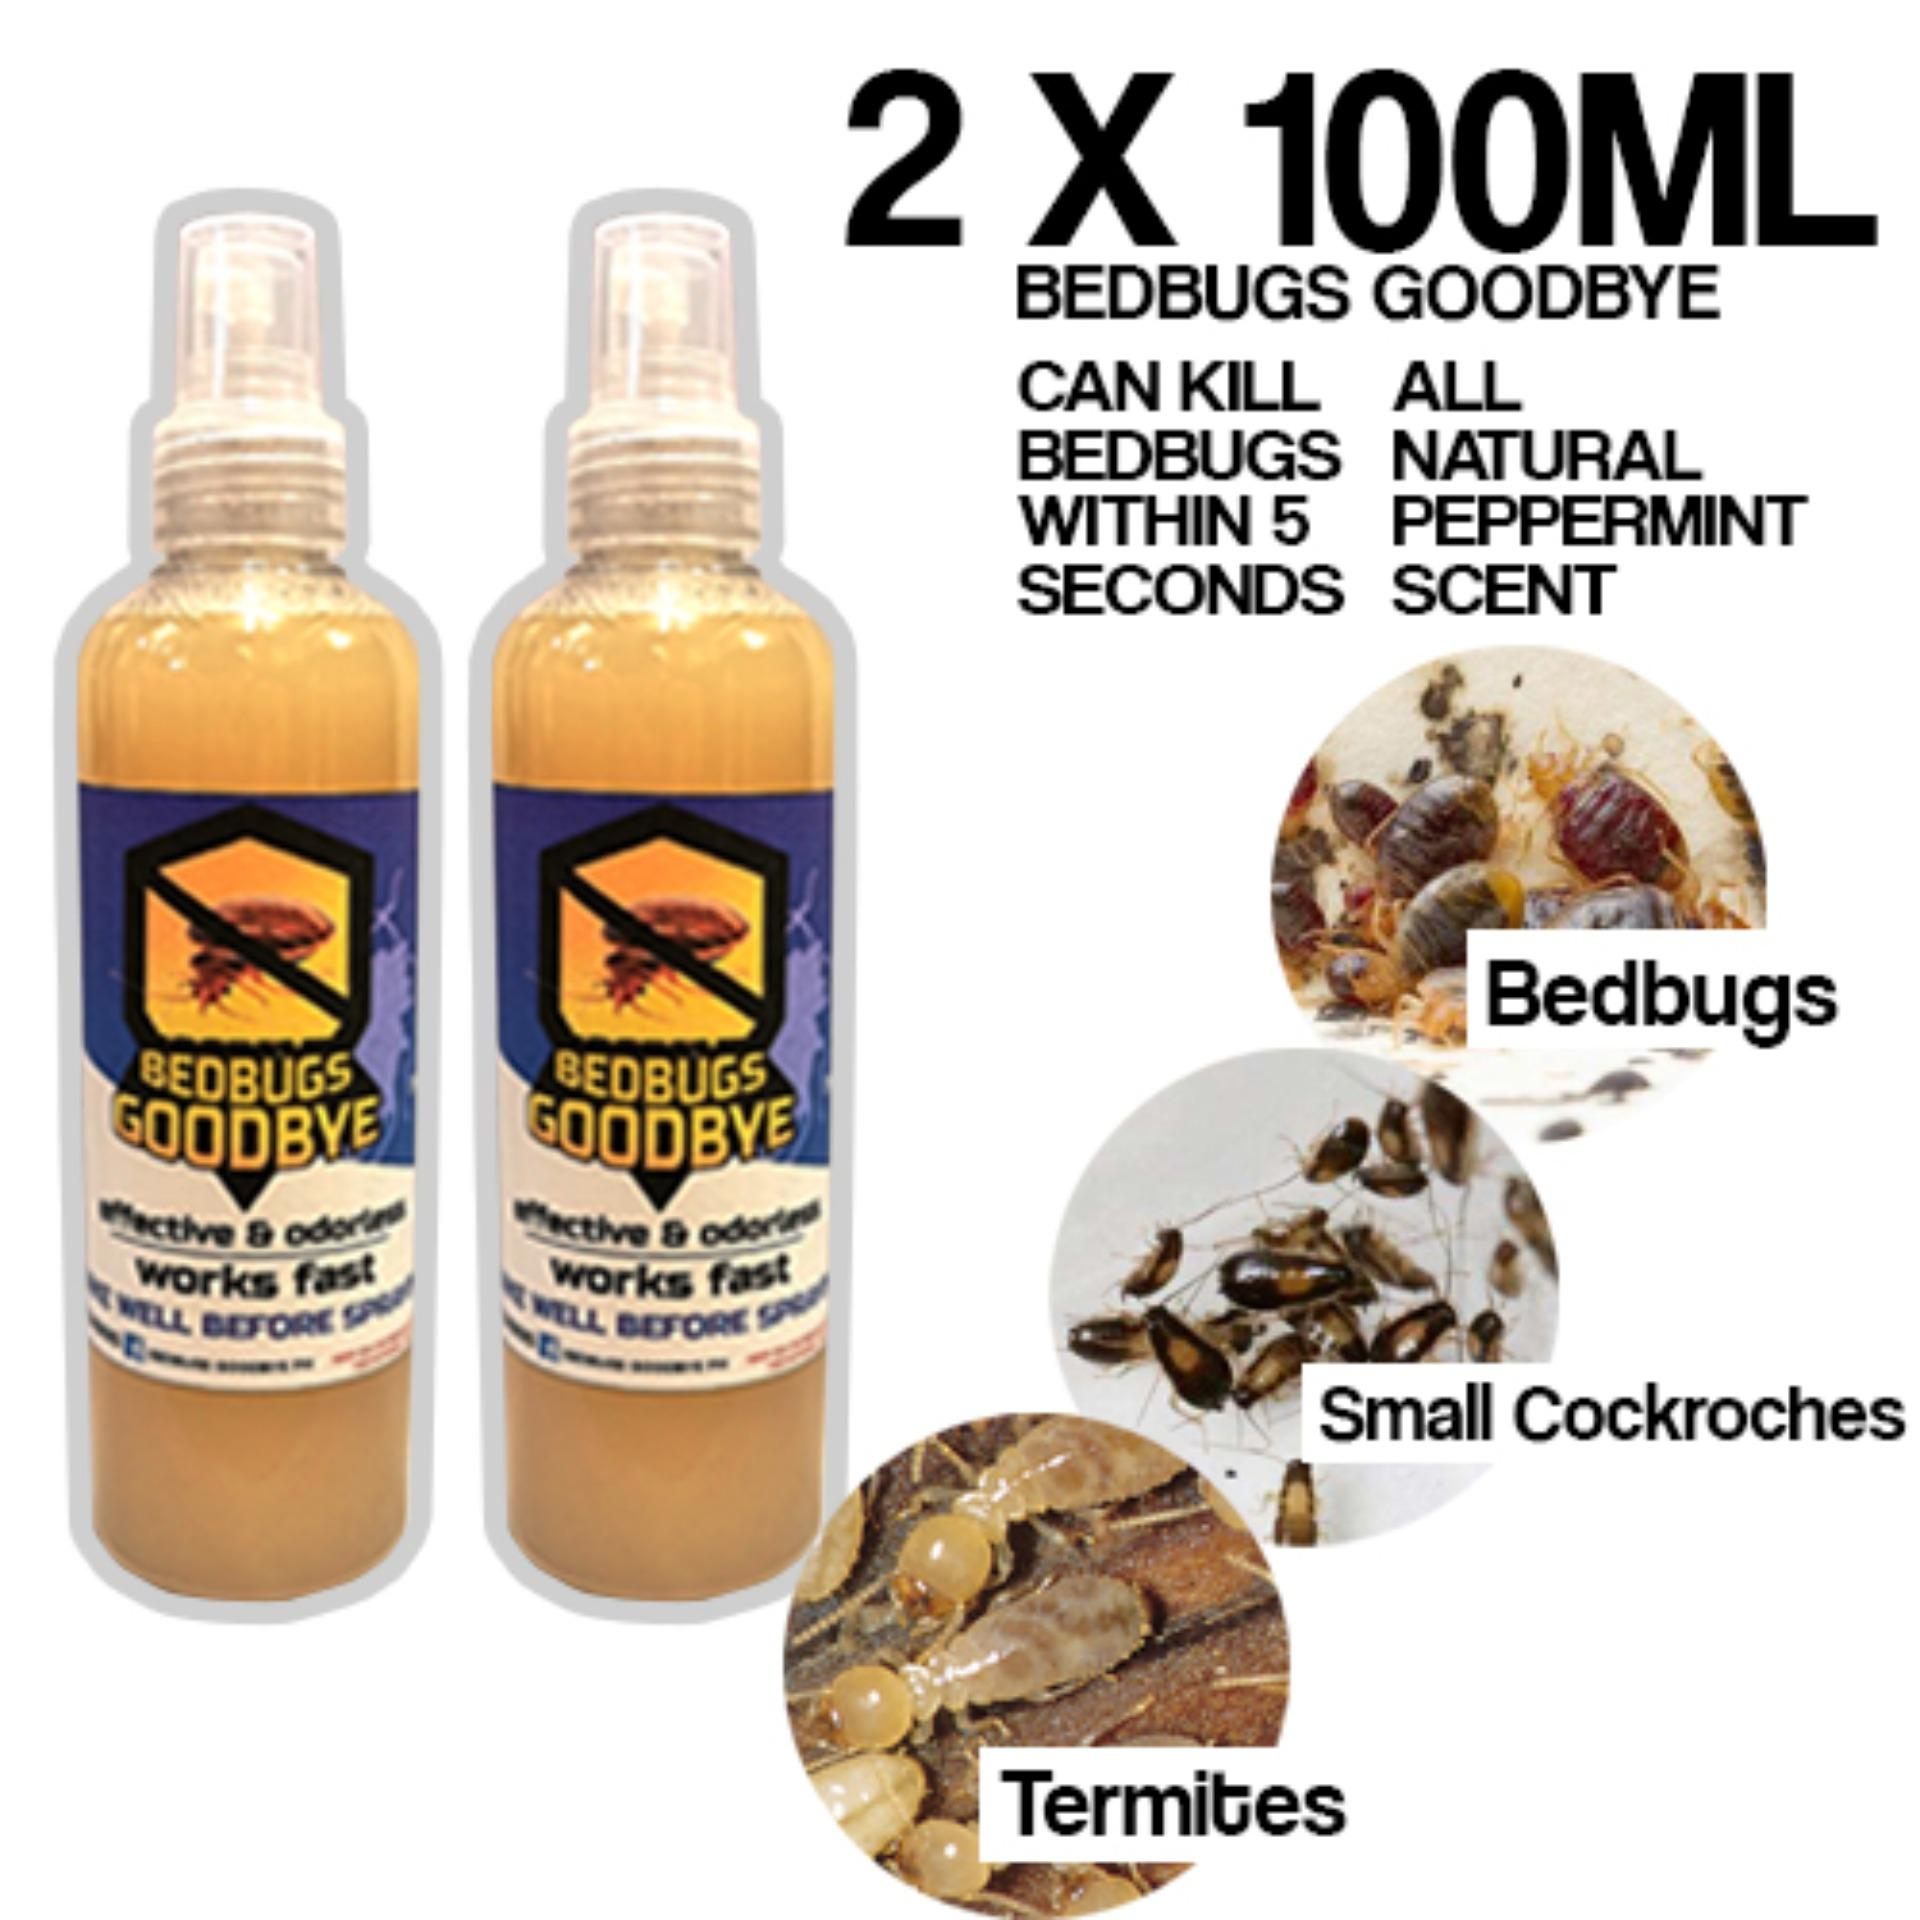 Bedbugs Goodbye Spray Natural Bed bugs termites small cockroaches Killer  effective newly improved peppermint scent 100ml SET OF 2